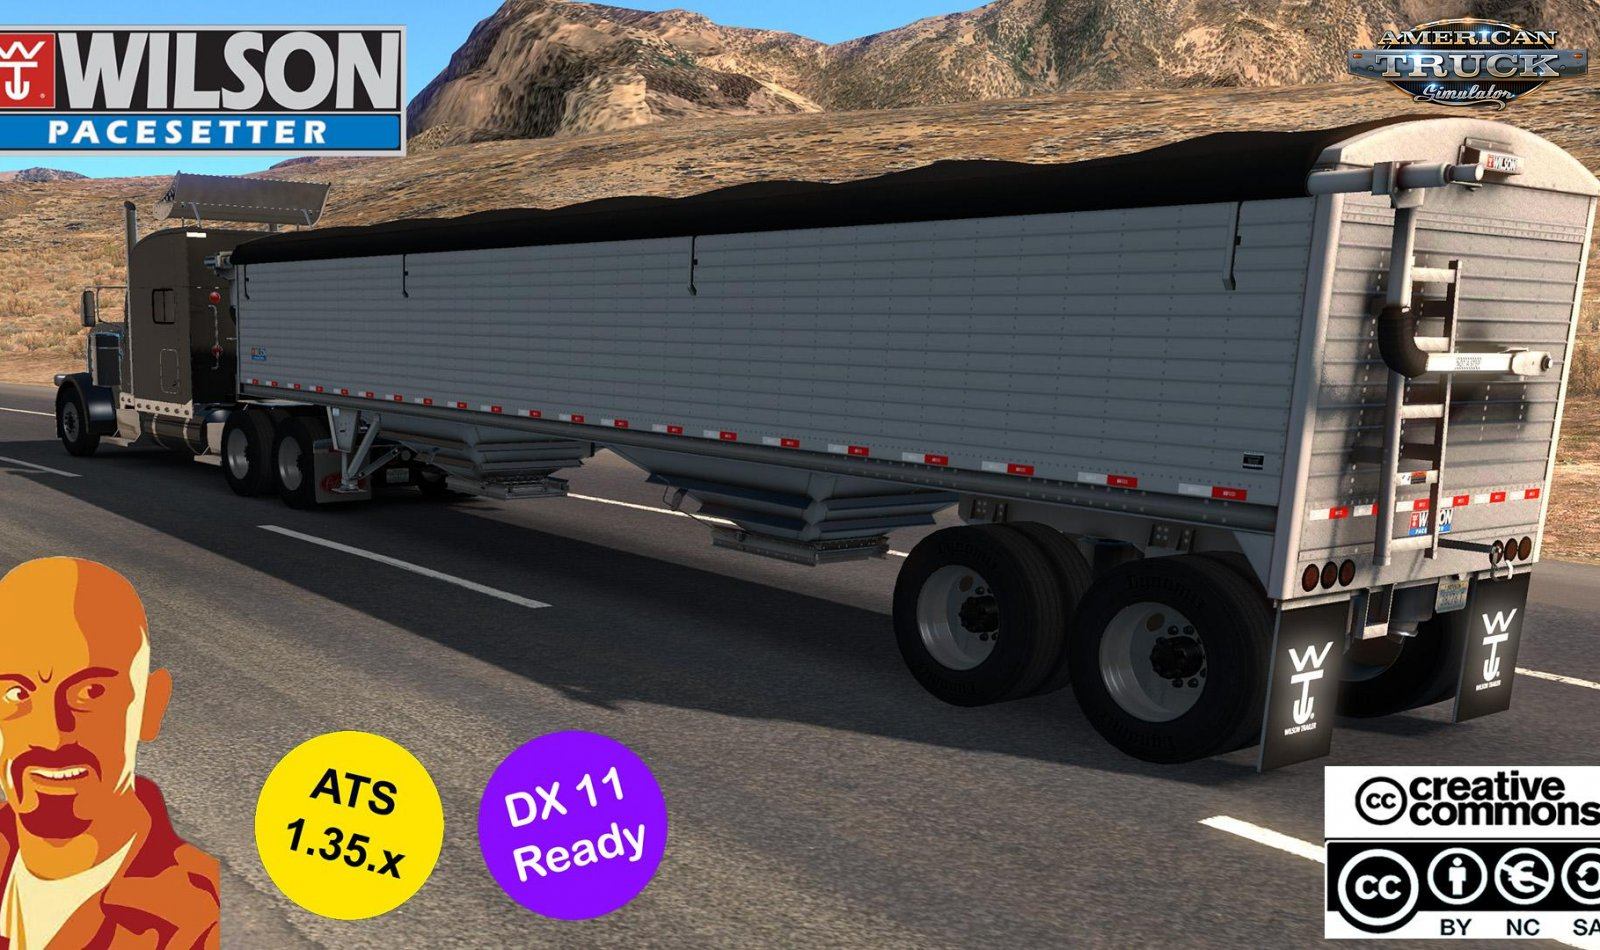 Wilson Pacesetter Trailer v1.0 (1.35.x) for ATS